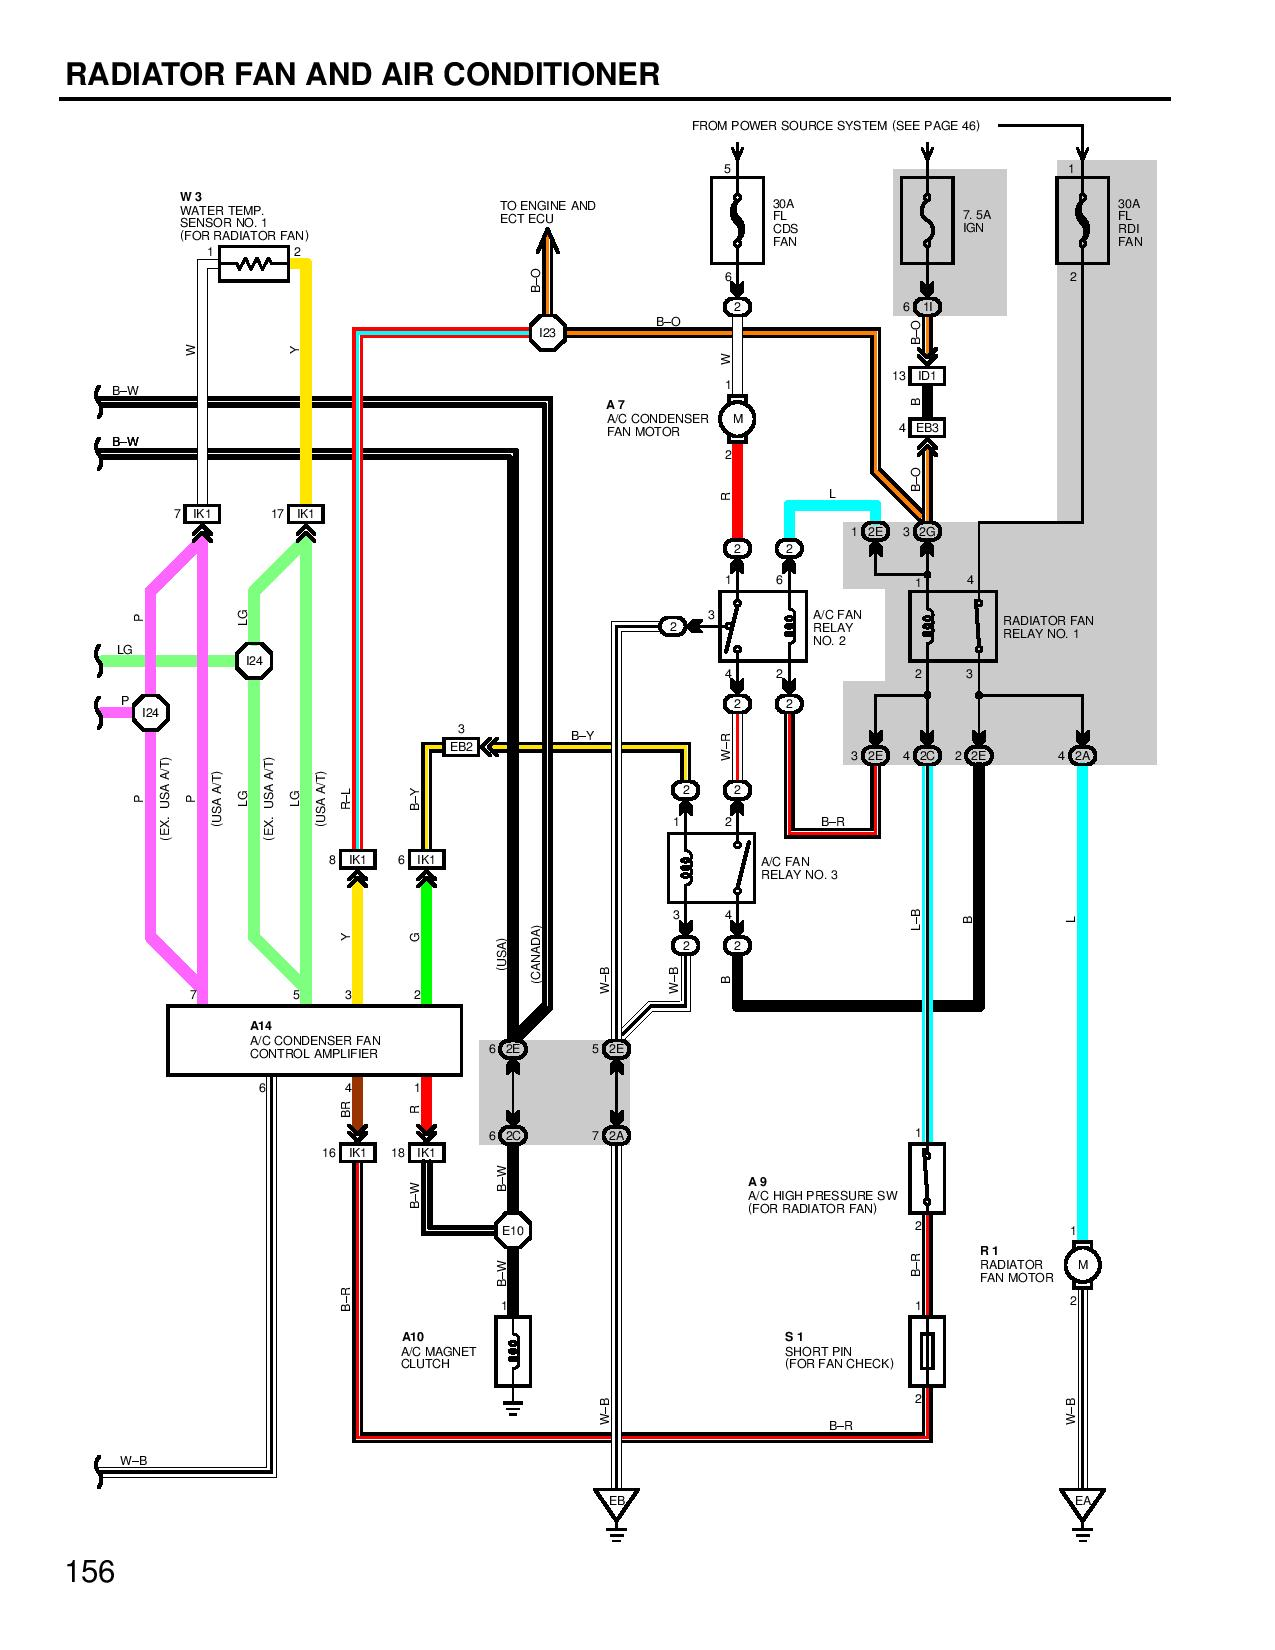 Schematic Wiring Diagram Of Daihatsu Charade G10 The 1st Generation on dodge ram leaking coolant, 2001 dodge ram electrical diagram, dodge ram interior diagram, dodge ram airbag light, dodge ram transmission identification, dodge ram radio diagram, dodge ram tail light wiring, dodge ram infinity system, dodge wire harness diagram, dodge ram wire harness, dodge ram control panel, dodge ram 1500 diagram, 2002 dodge 3500 wire diagram, dodge ram body diagram, dodge ram parts diagram, dodge ram starter diagram, dodge ram headlight diagram, dodge ram distributor, 2002 dodge ram diagram, circuit diagram,